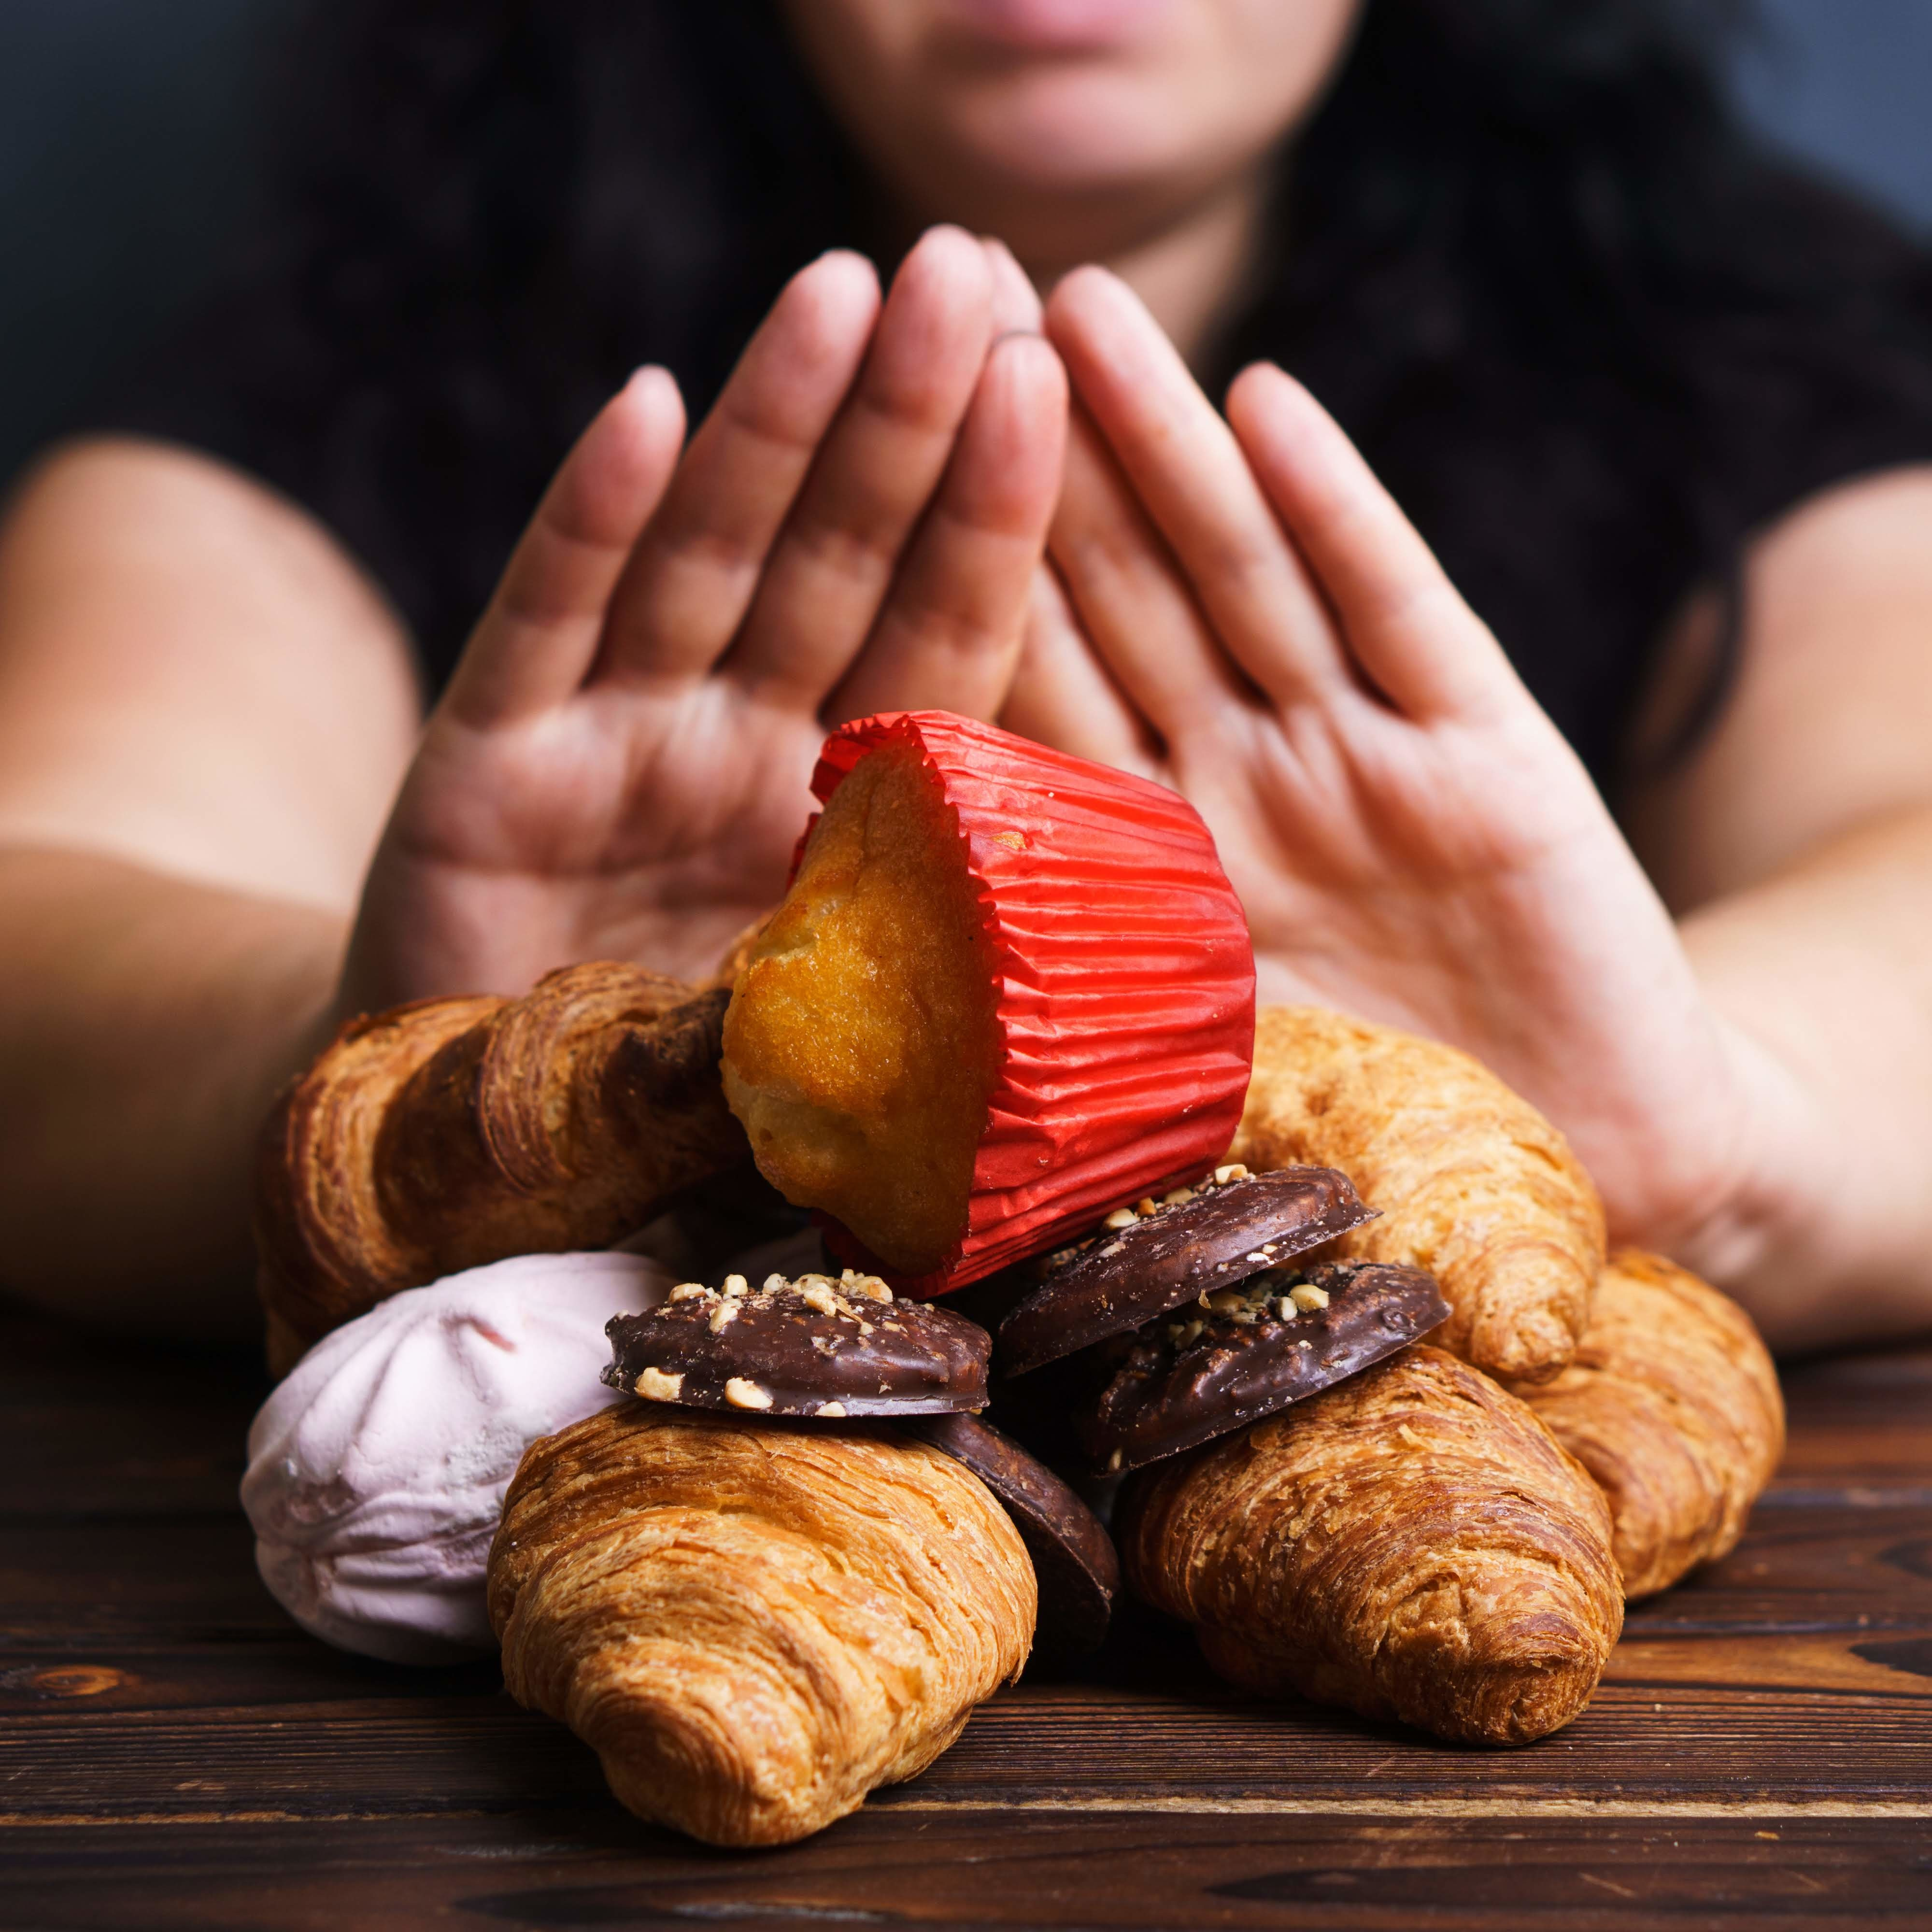 Obesity prevention, conscious eating, nutrition choices, mindfulness and healthy lifestyle. Addicted woman refuse to eat sweets, close up